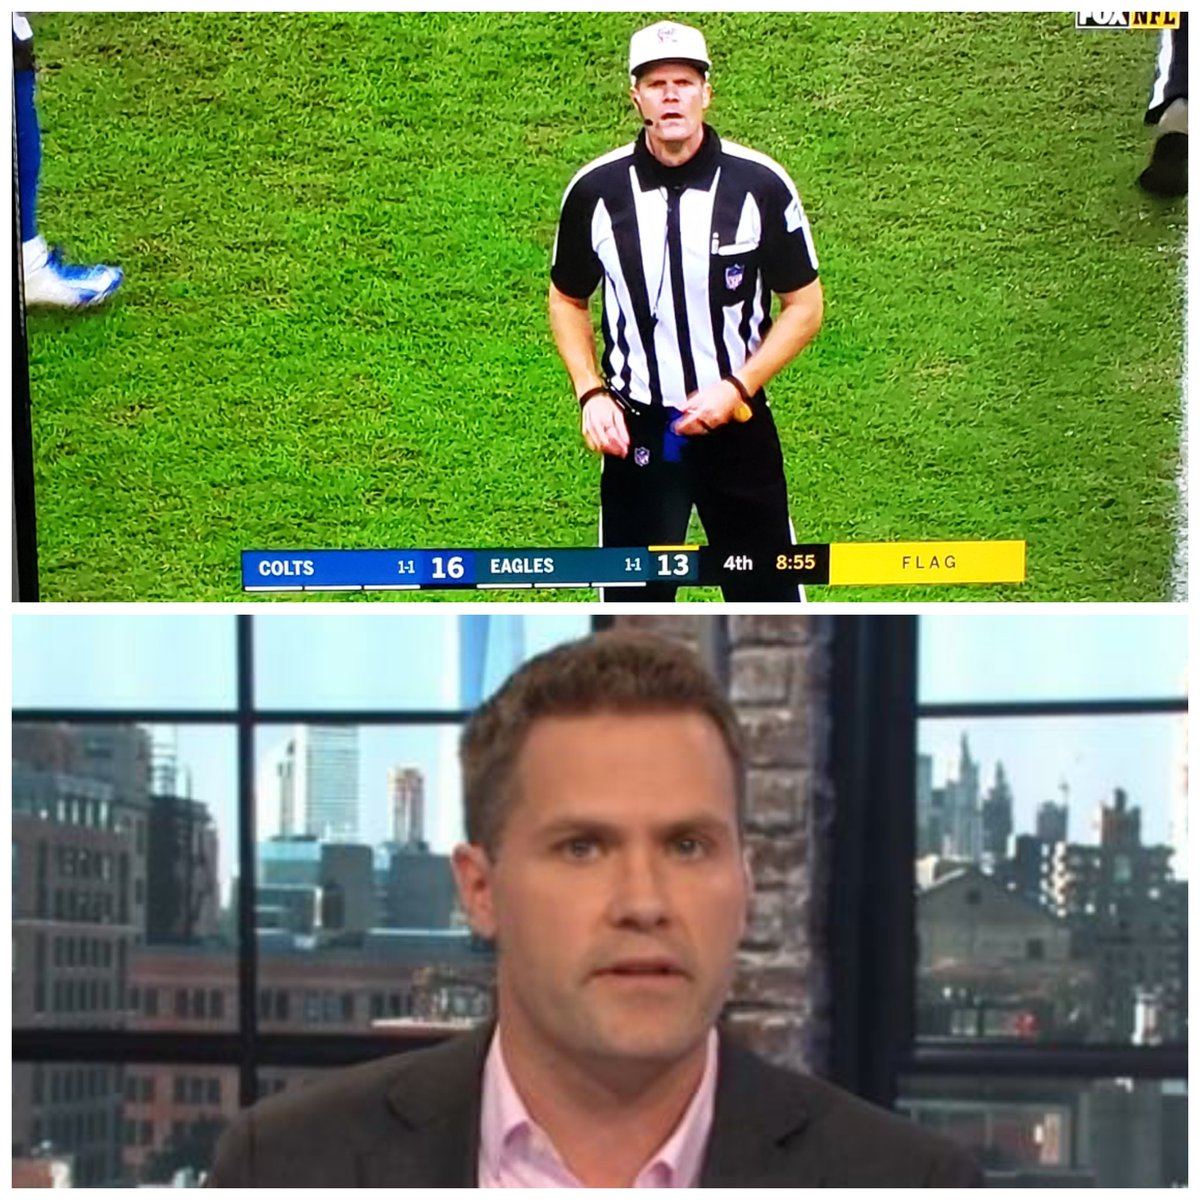 So we&#39;re gonna act like @KyleBrandt wasn&#39;t officiating in Philly? You ain&#39;t slick bro  @nflnetwork <br>http://pic.twitter.com/ic8k4sf3AC